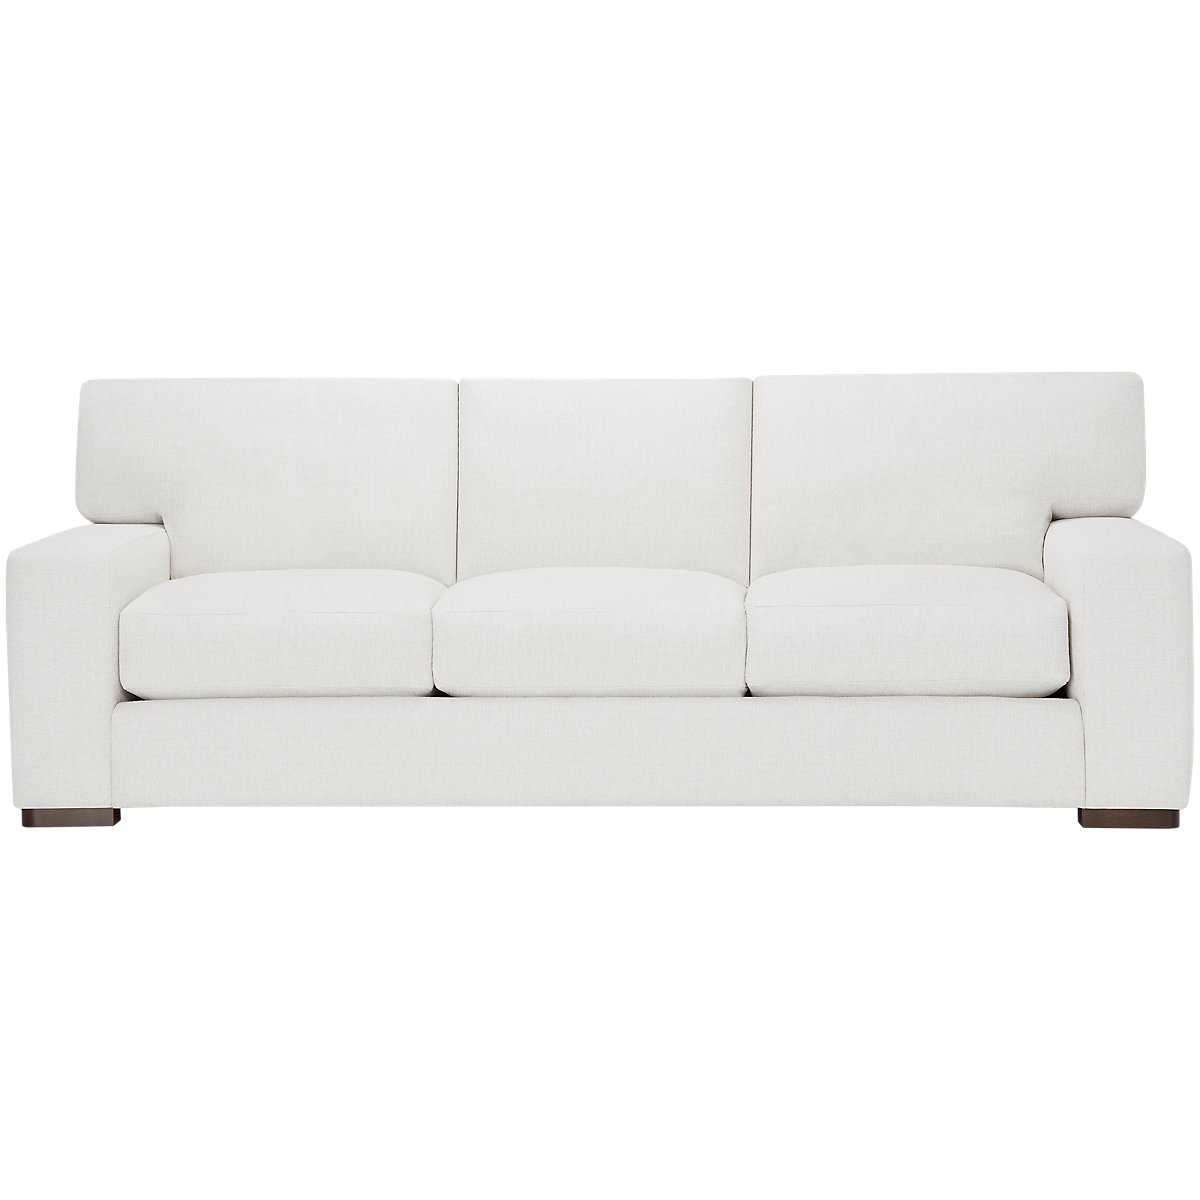 Veronica White Fabric Large Sofa